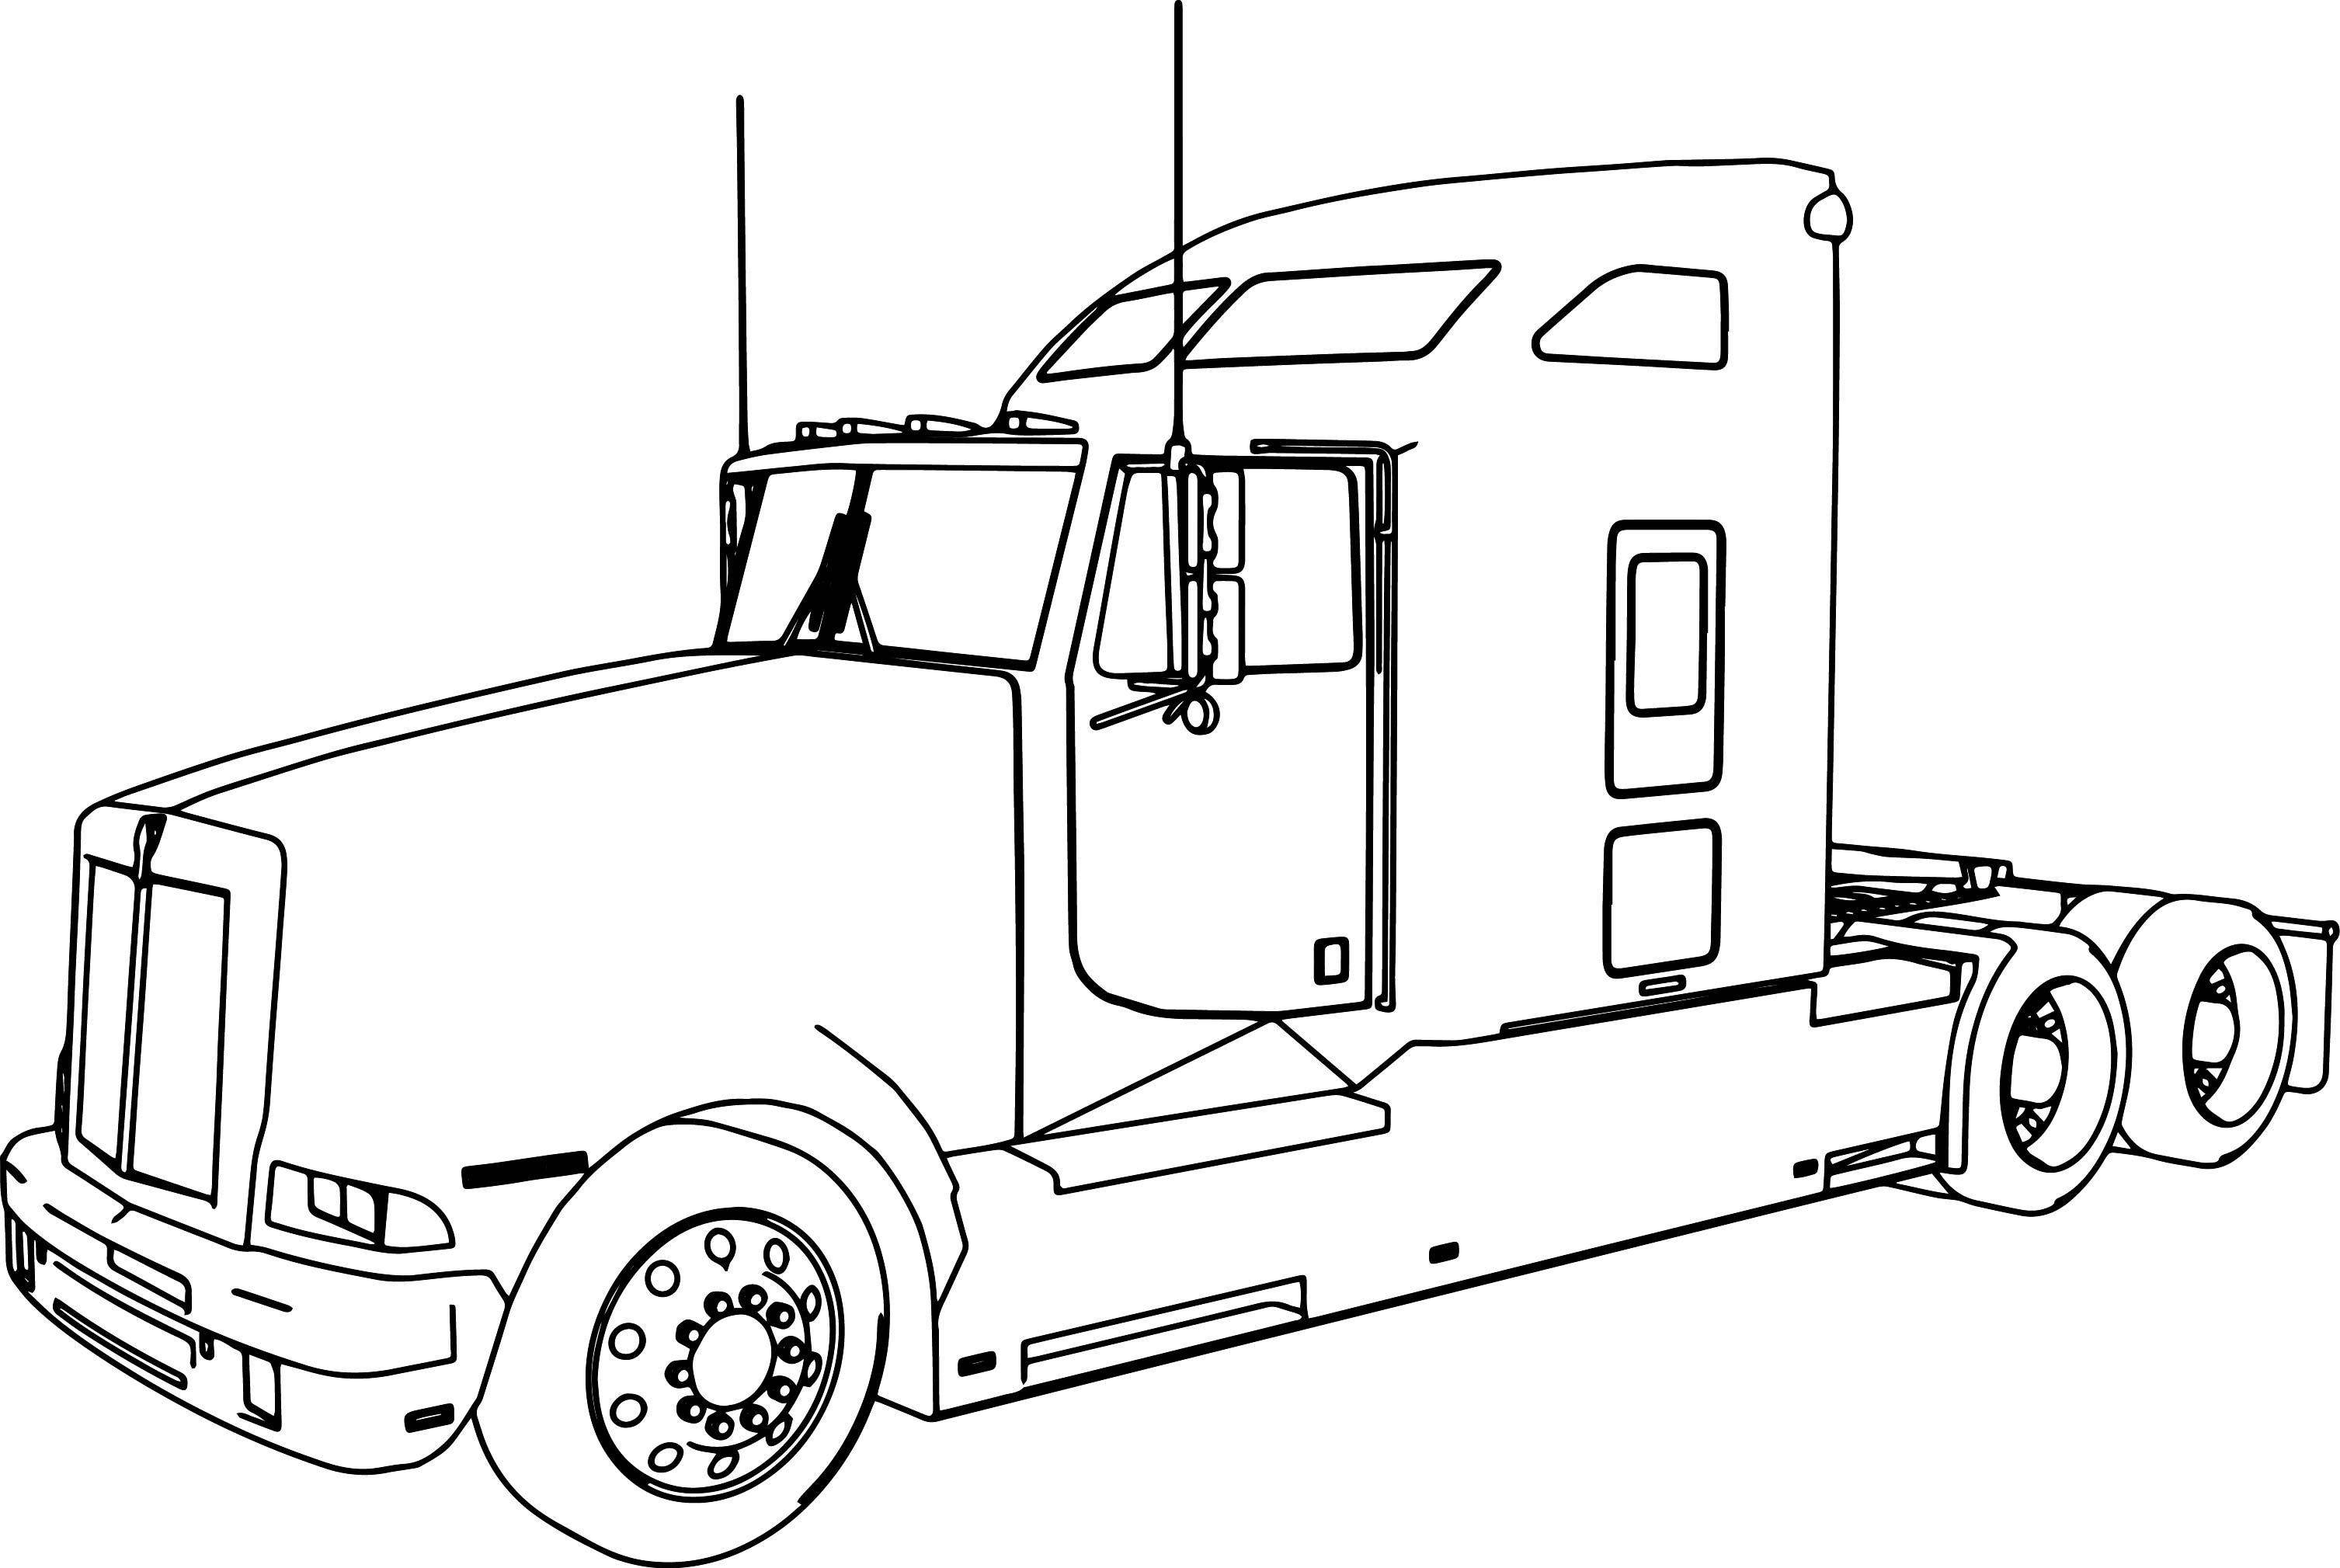 cool truck coloring pages semi truck drawing at getdrawings free download cool pages truck coloring